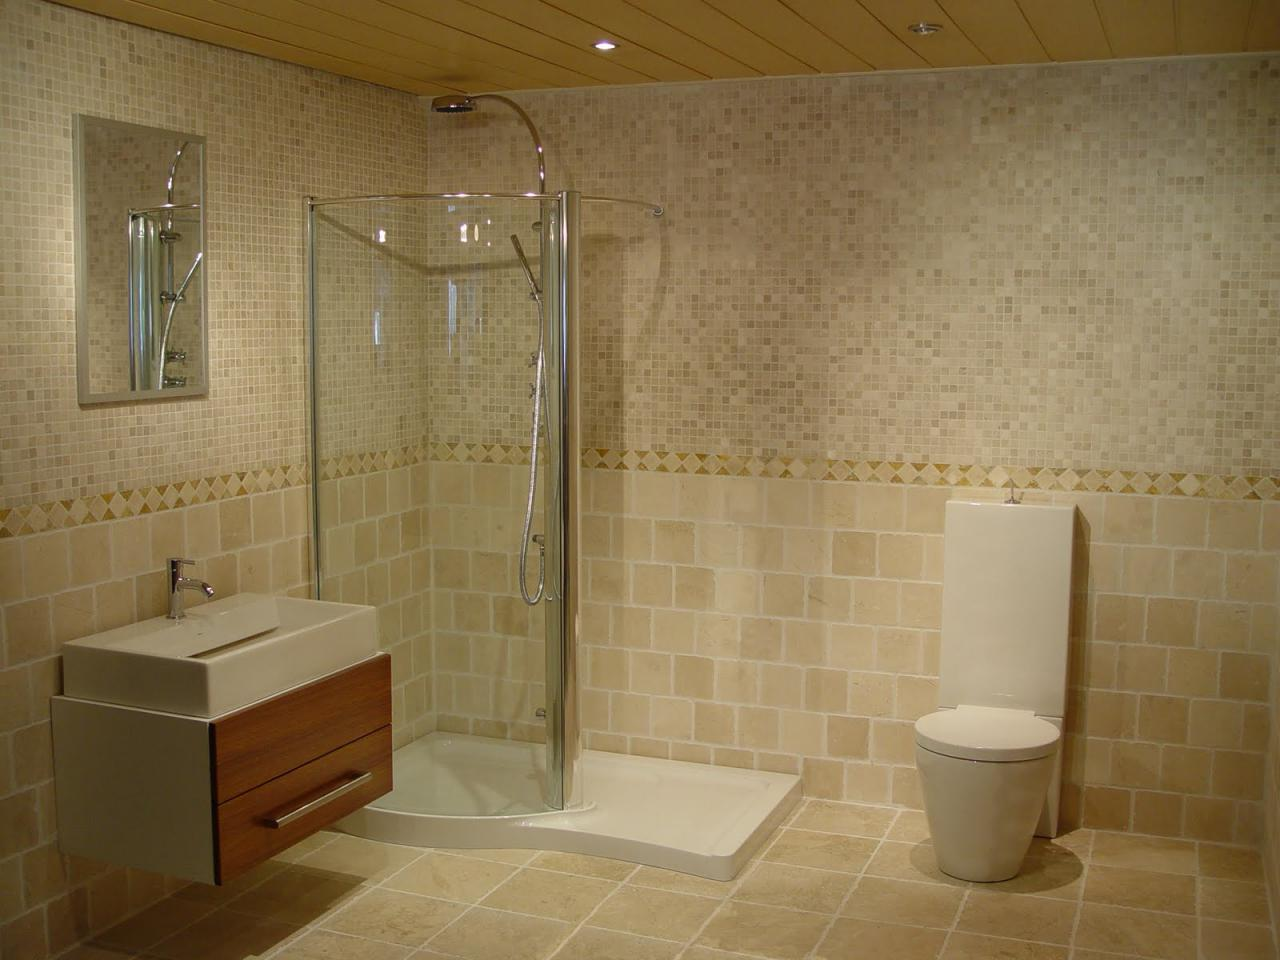 Bathroom%2bWall%2bTiles%2bIdeas-Bathroom-Tile-Ideas.jpg